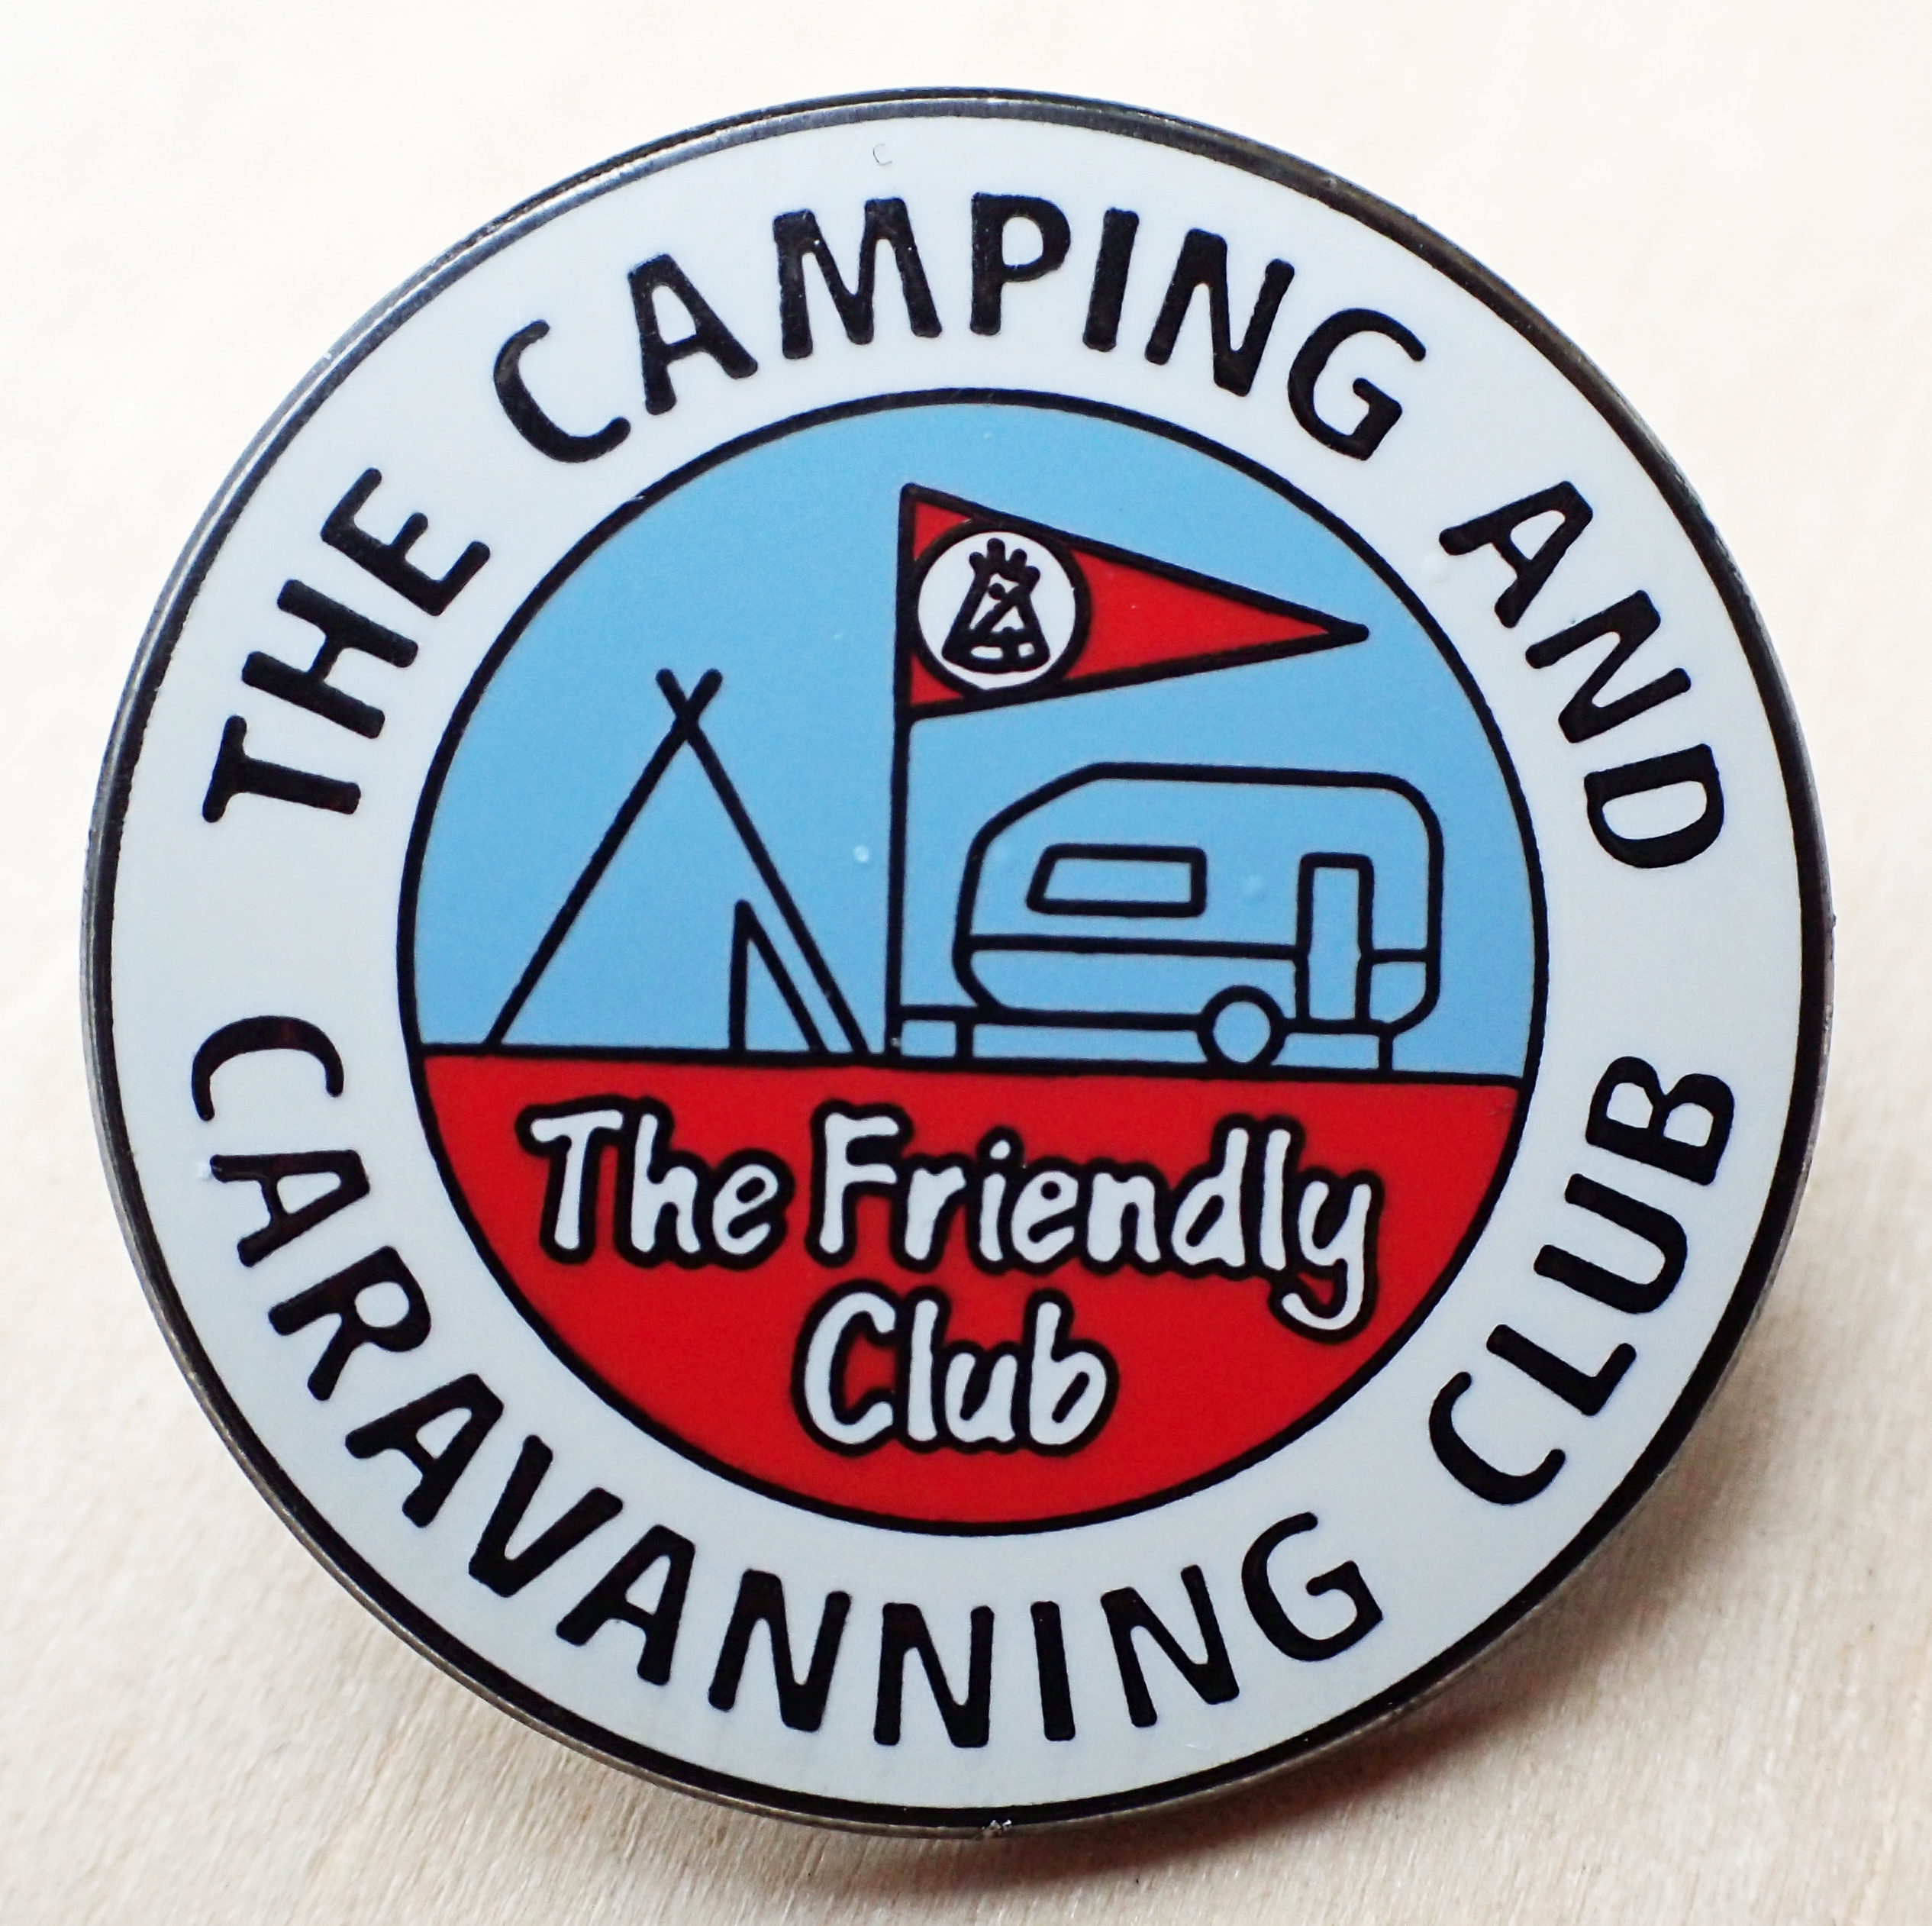 Current metal badge for The Camping and Caravanning Club